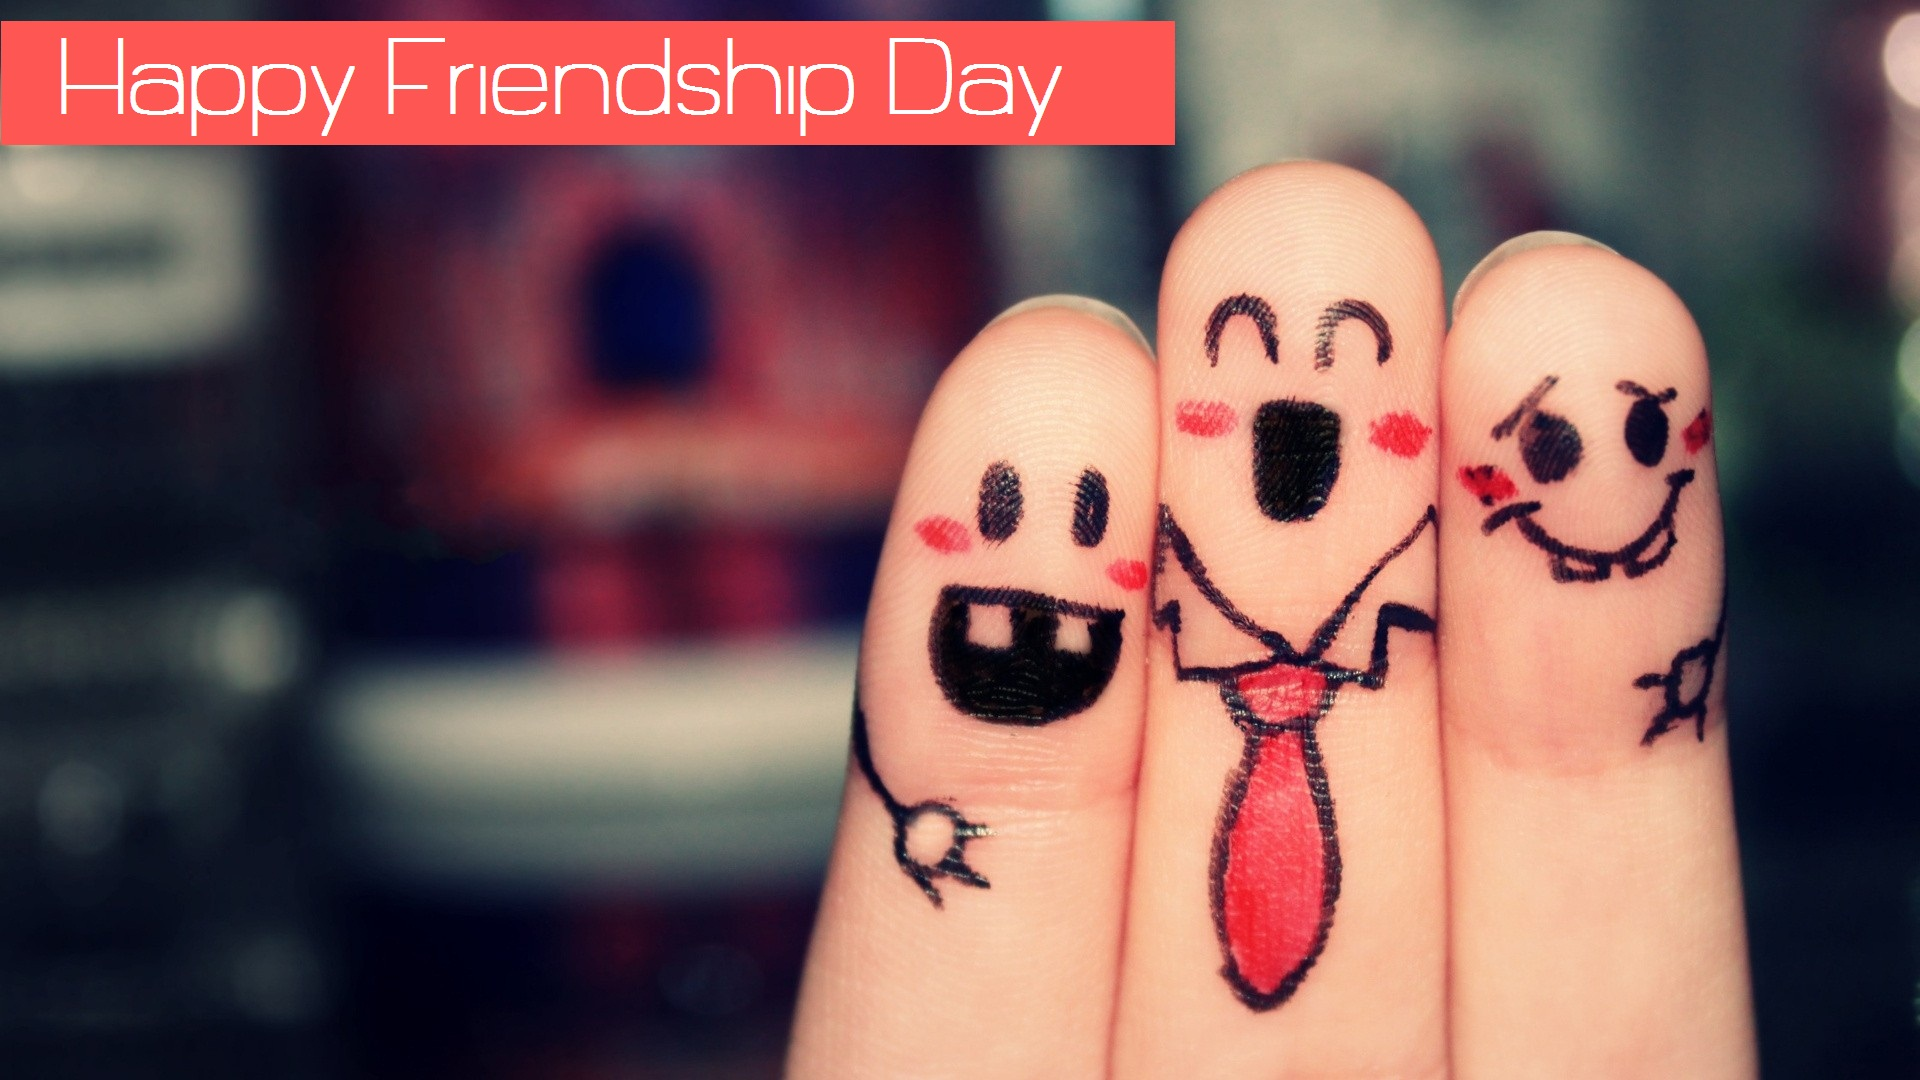 50 happy friendship day whatsapp status quotes messages atulhost happy friendship day hd wallpapers download altavistaventures Image collections